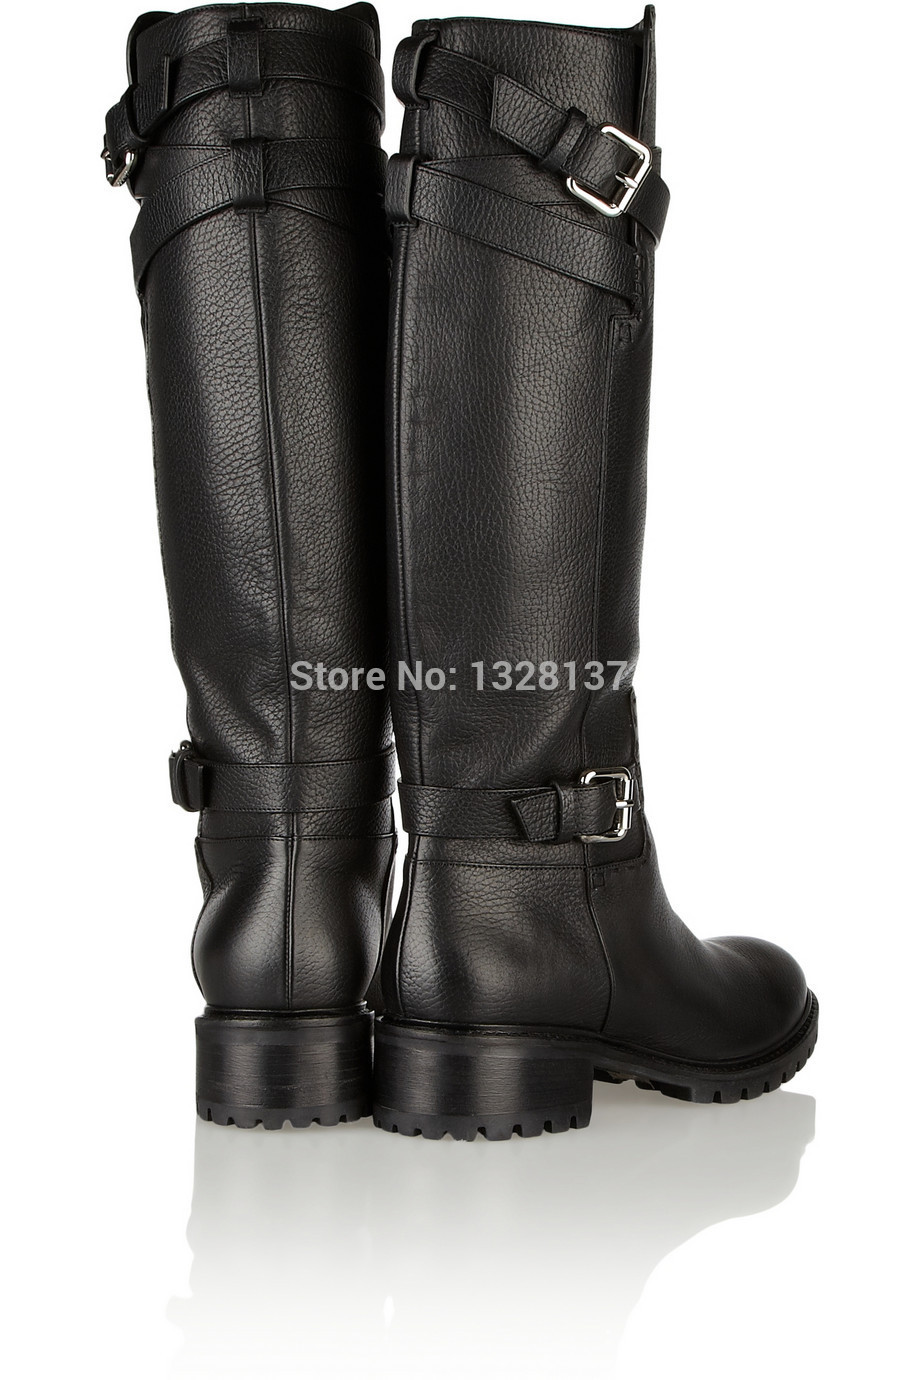 Compare Prices on Flat Black Knee High Boots- Online Shopping/Buy ...